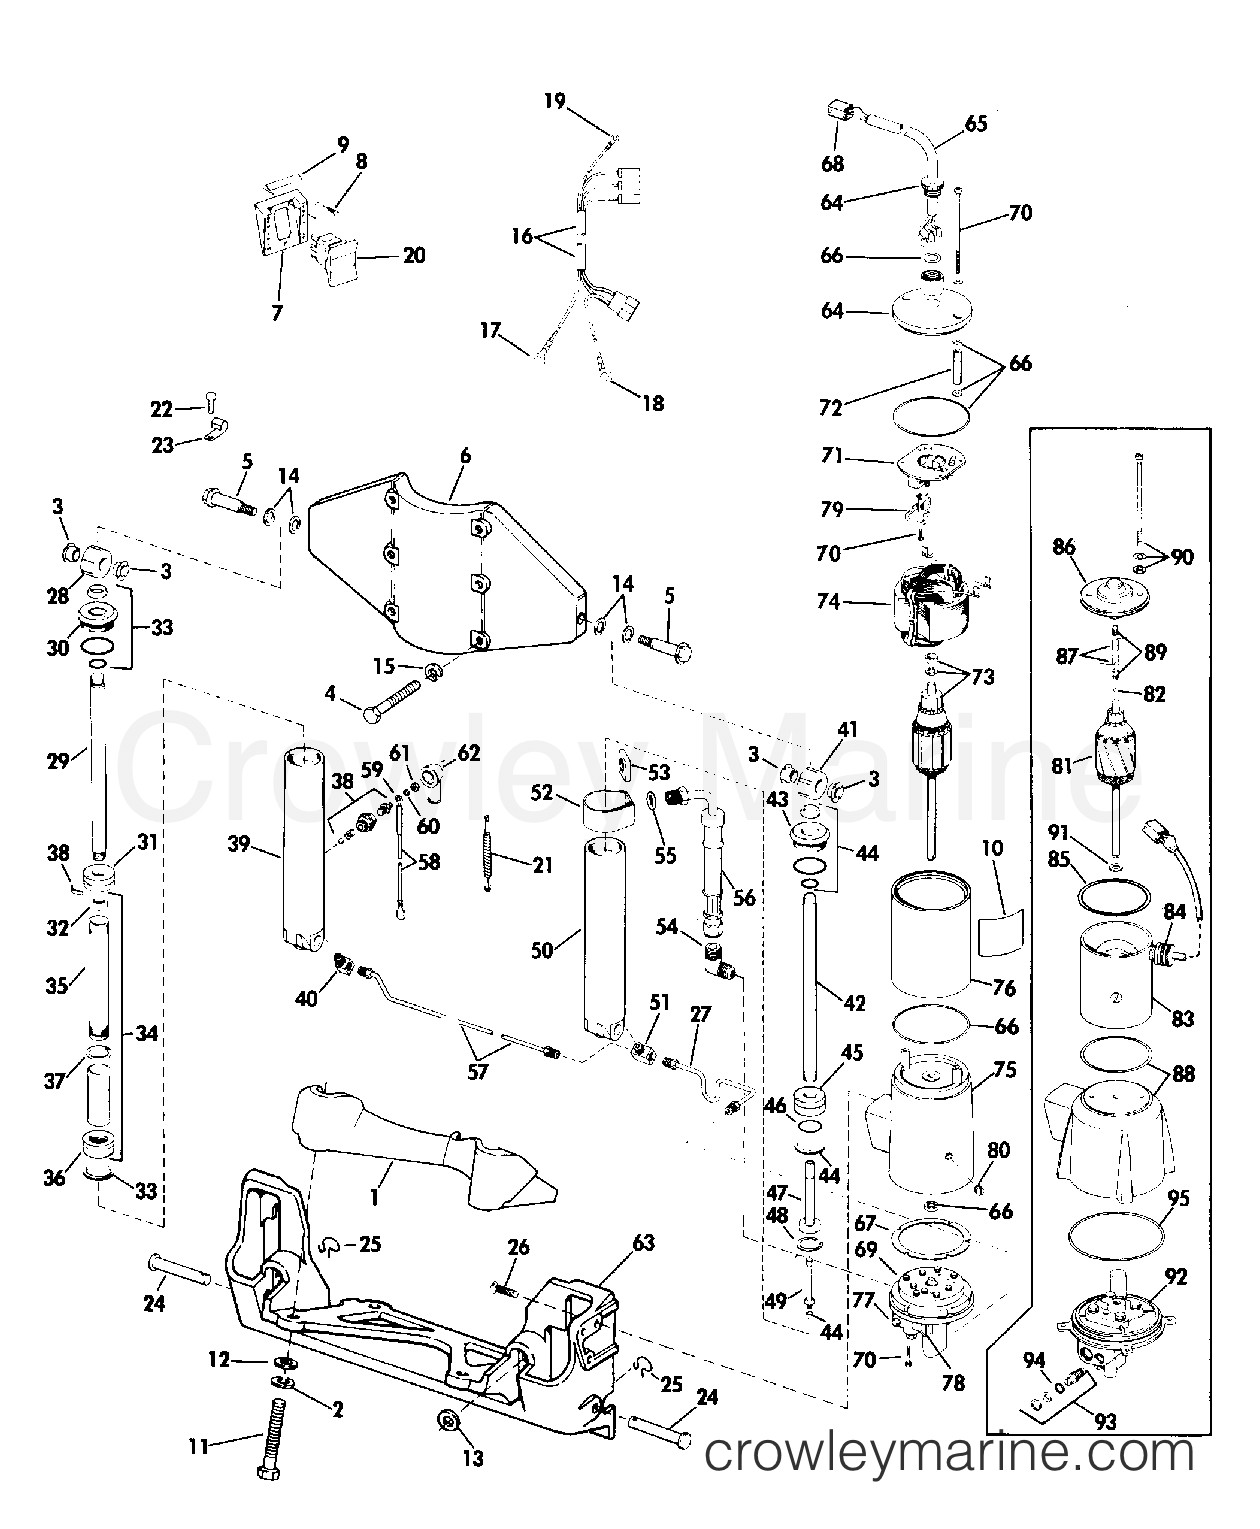 40 Hp Evinrude Parts Diagram 25 Hp Johnson Wiring Diagram